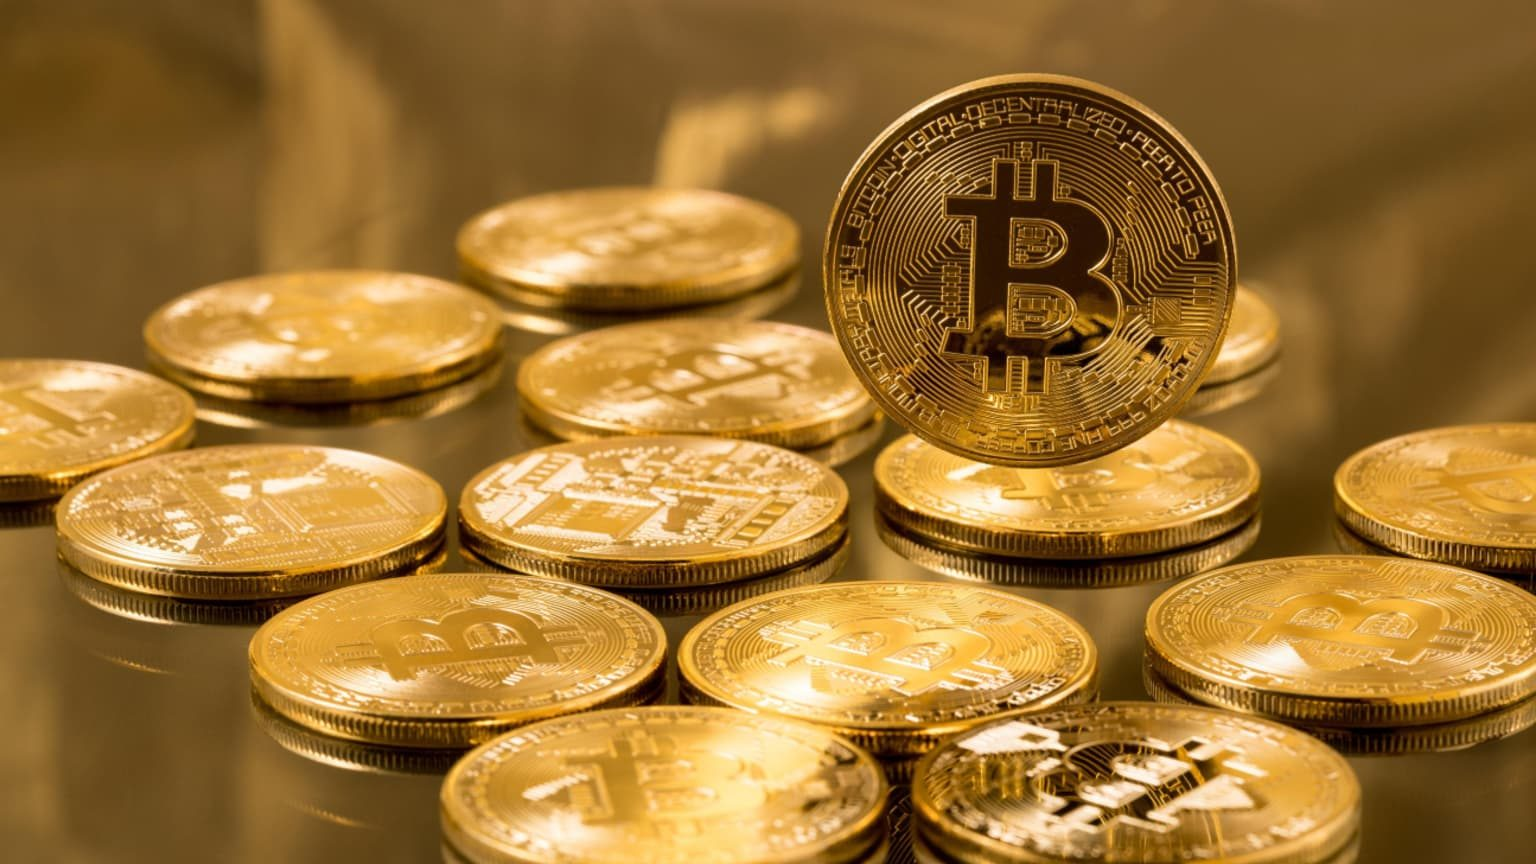 Gold Bitcoins on a table